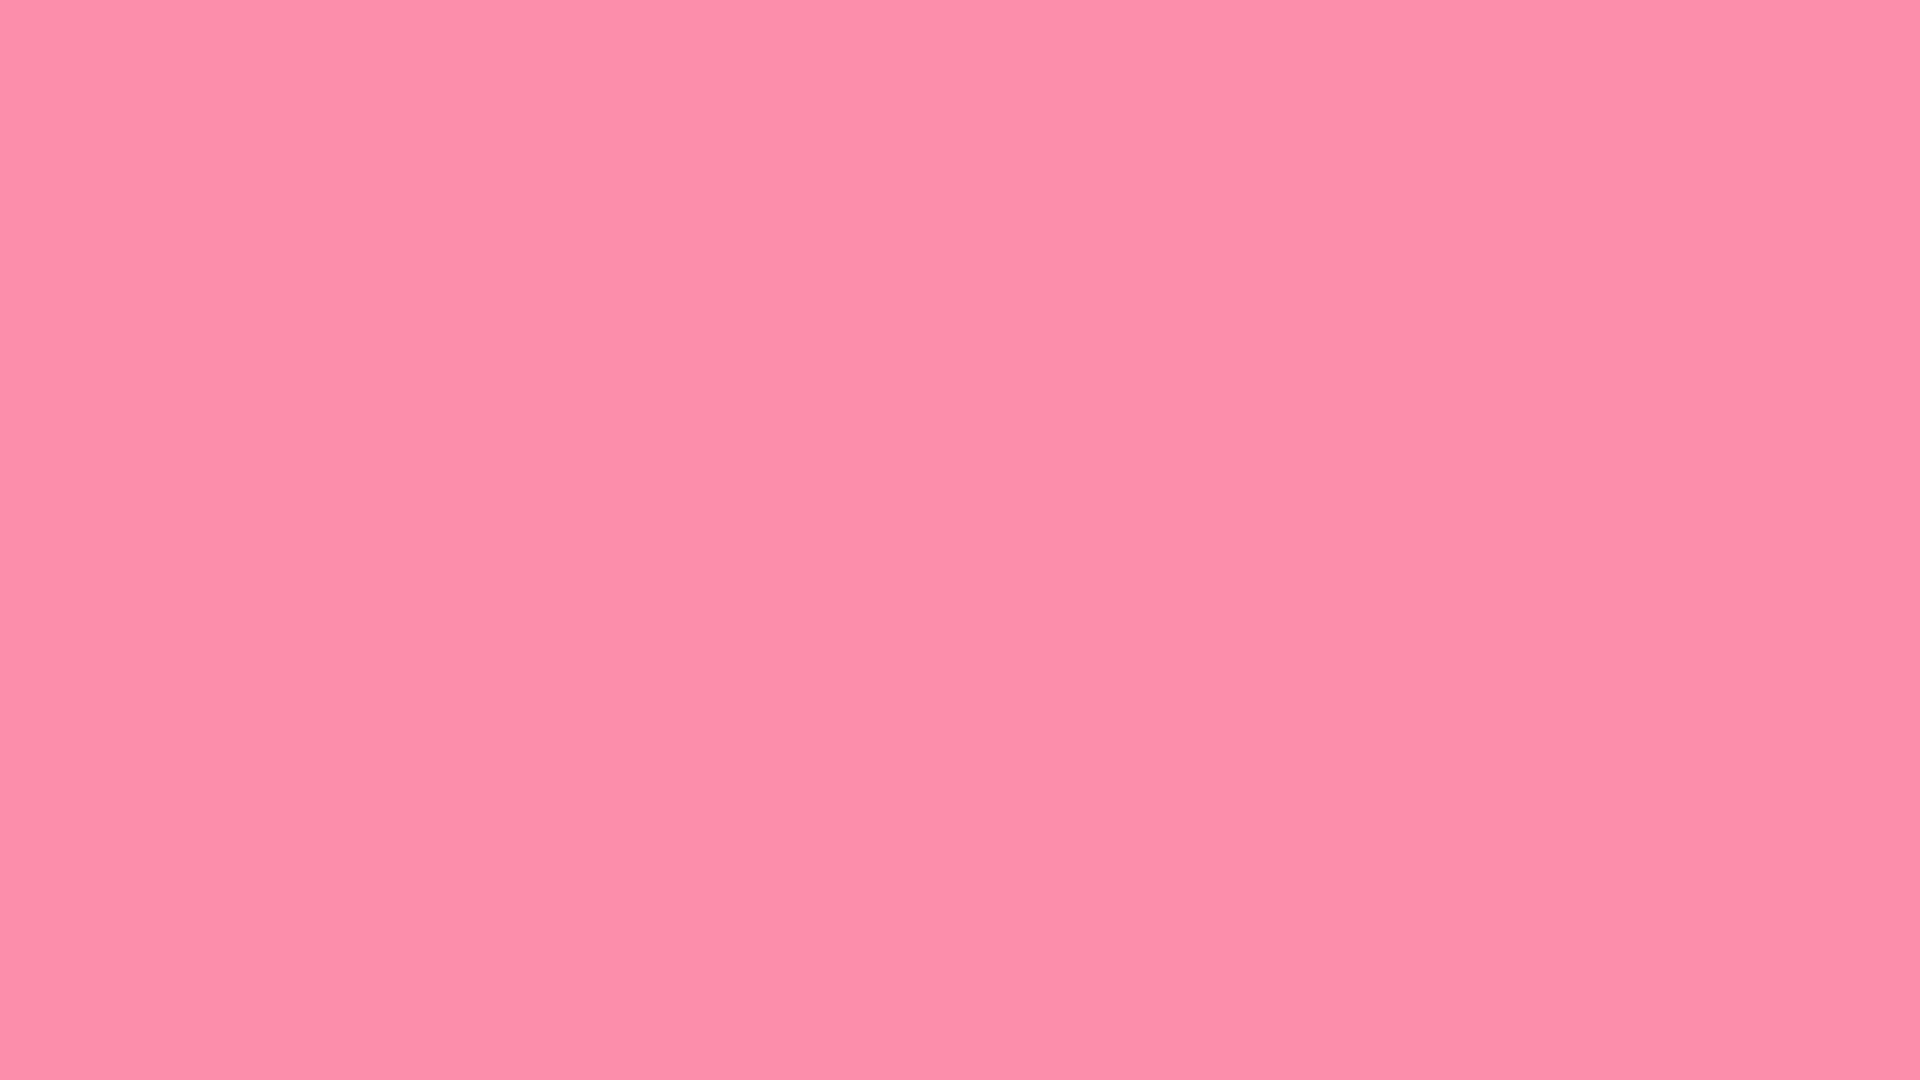 1920x1080 Flamingo Pink Solid Color Background